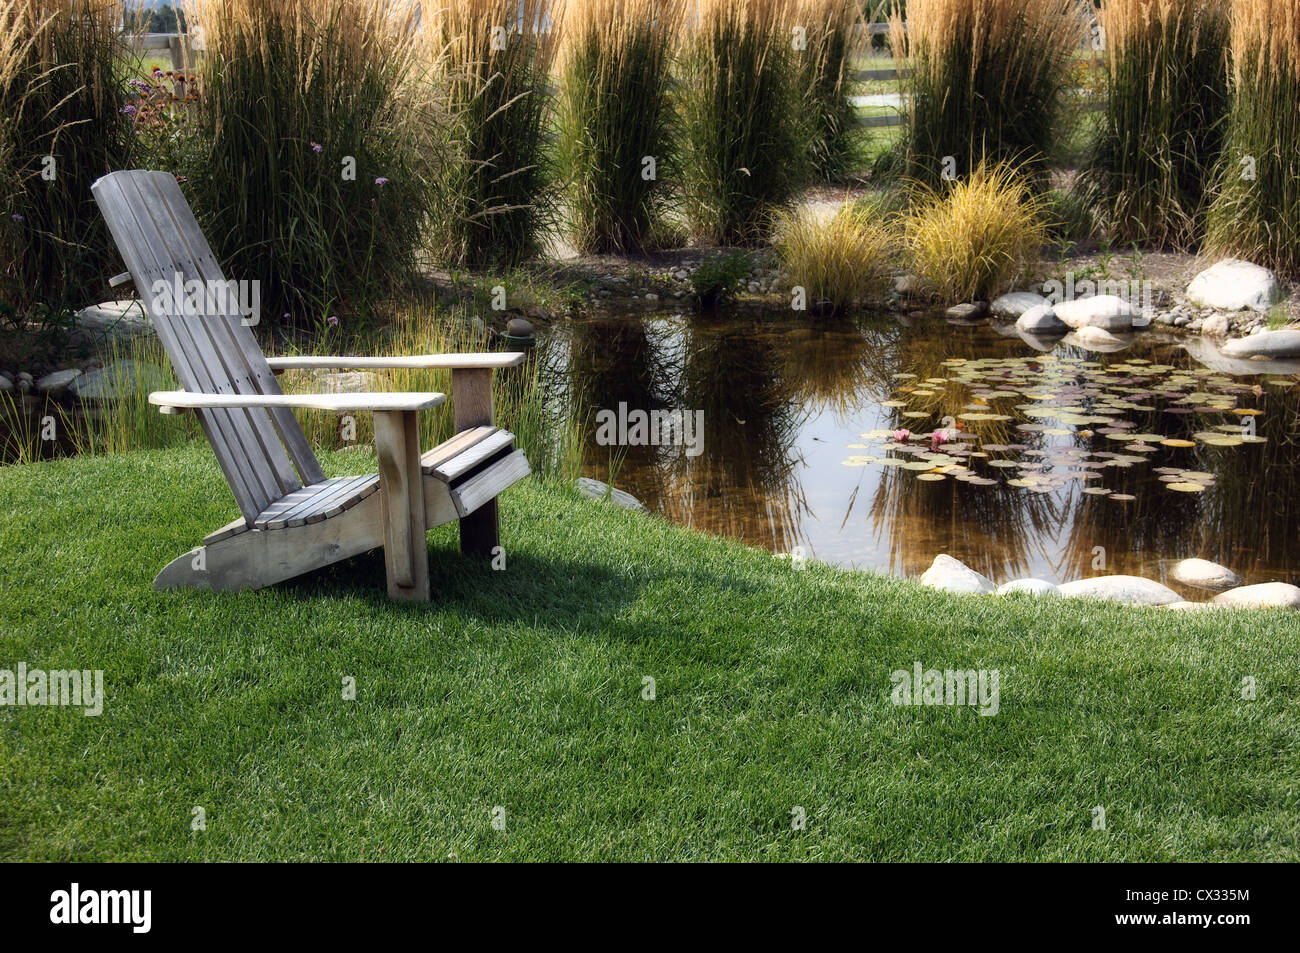 Astonishing A Wooden Lounge Chair Sitting On Grass Beside A Pool Filled Unemploymentrelief Wooden Chair Designs For Living Room Unemploymentrelieforg